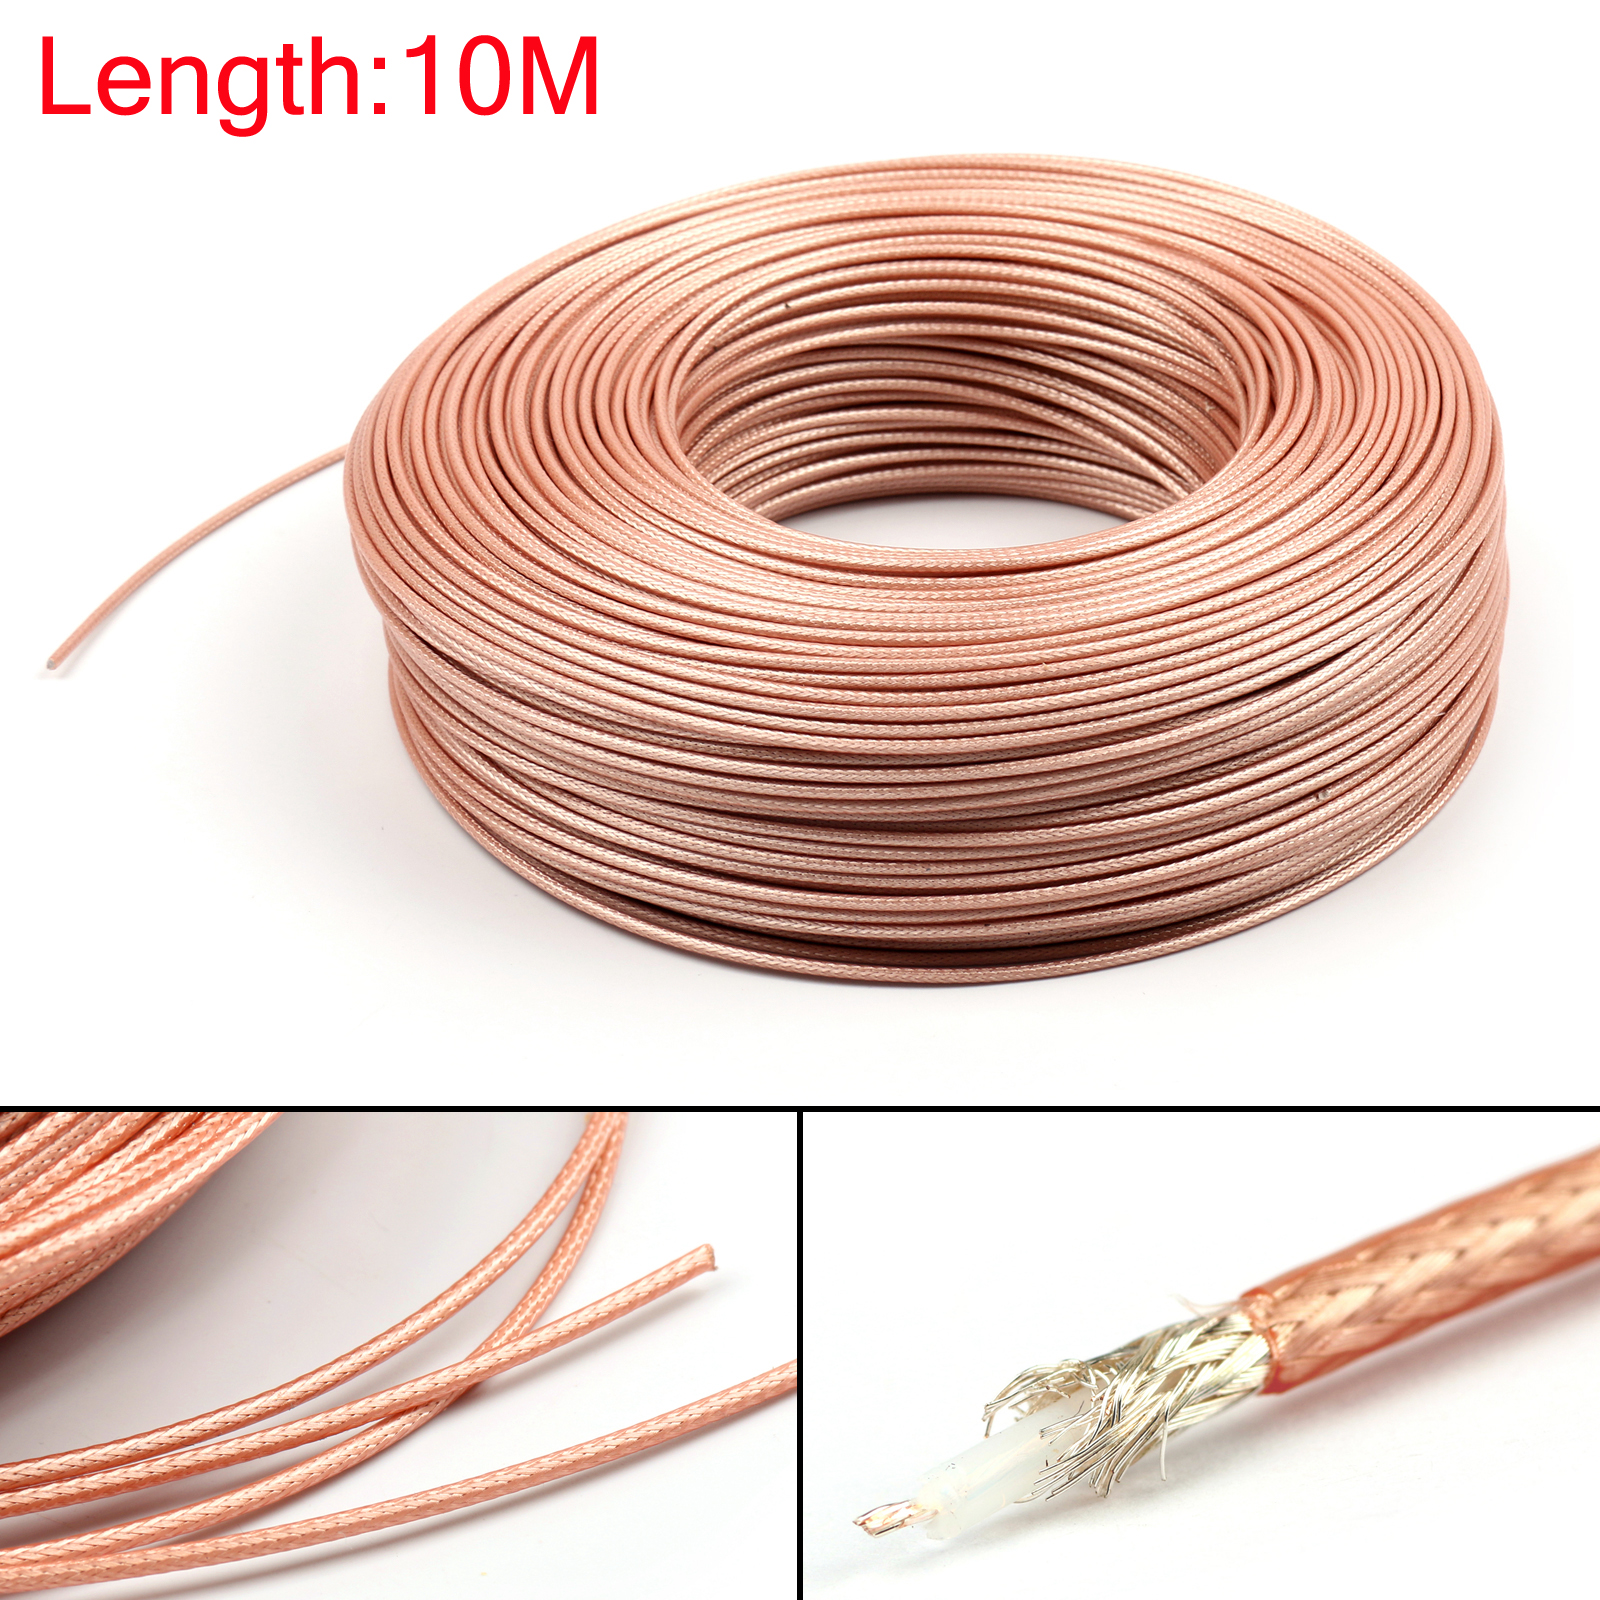 Details about 10m RG179 RF Coaxial Cable Connector 75ohm M17/94 RG-179 Coax Pigtail 32ft US